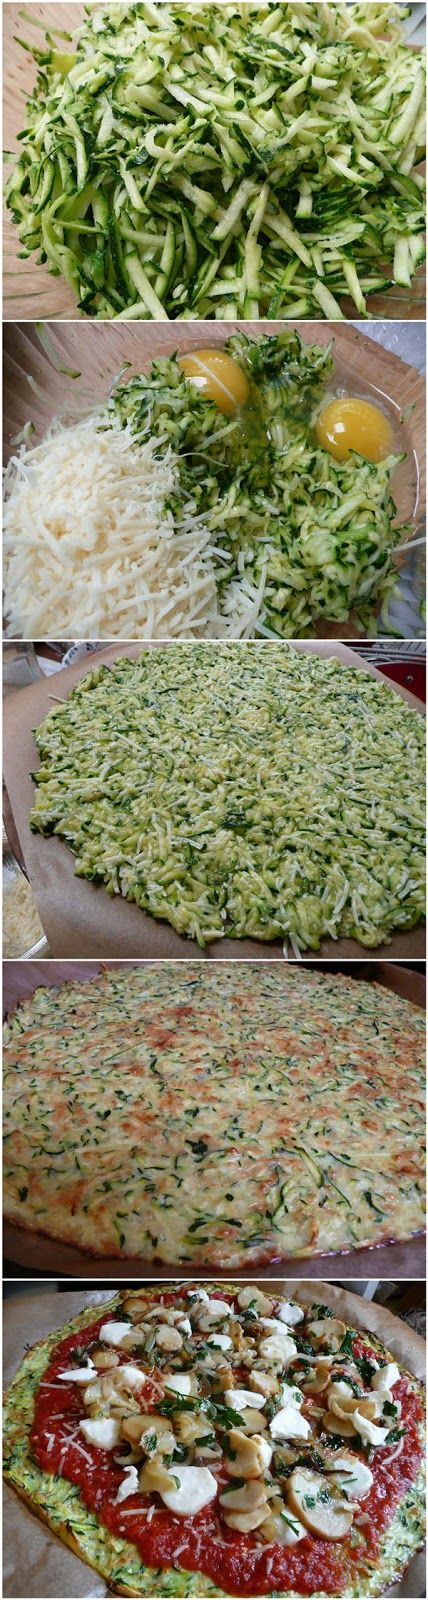 Low carb Zucchini Crust Pizza @catherine52